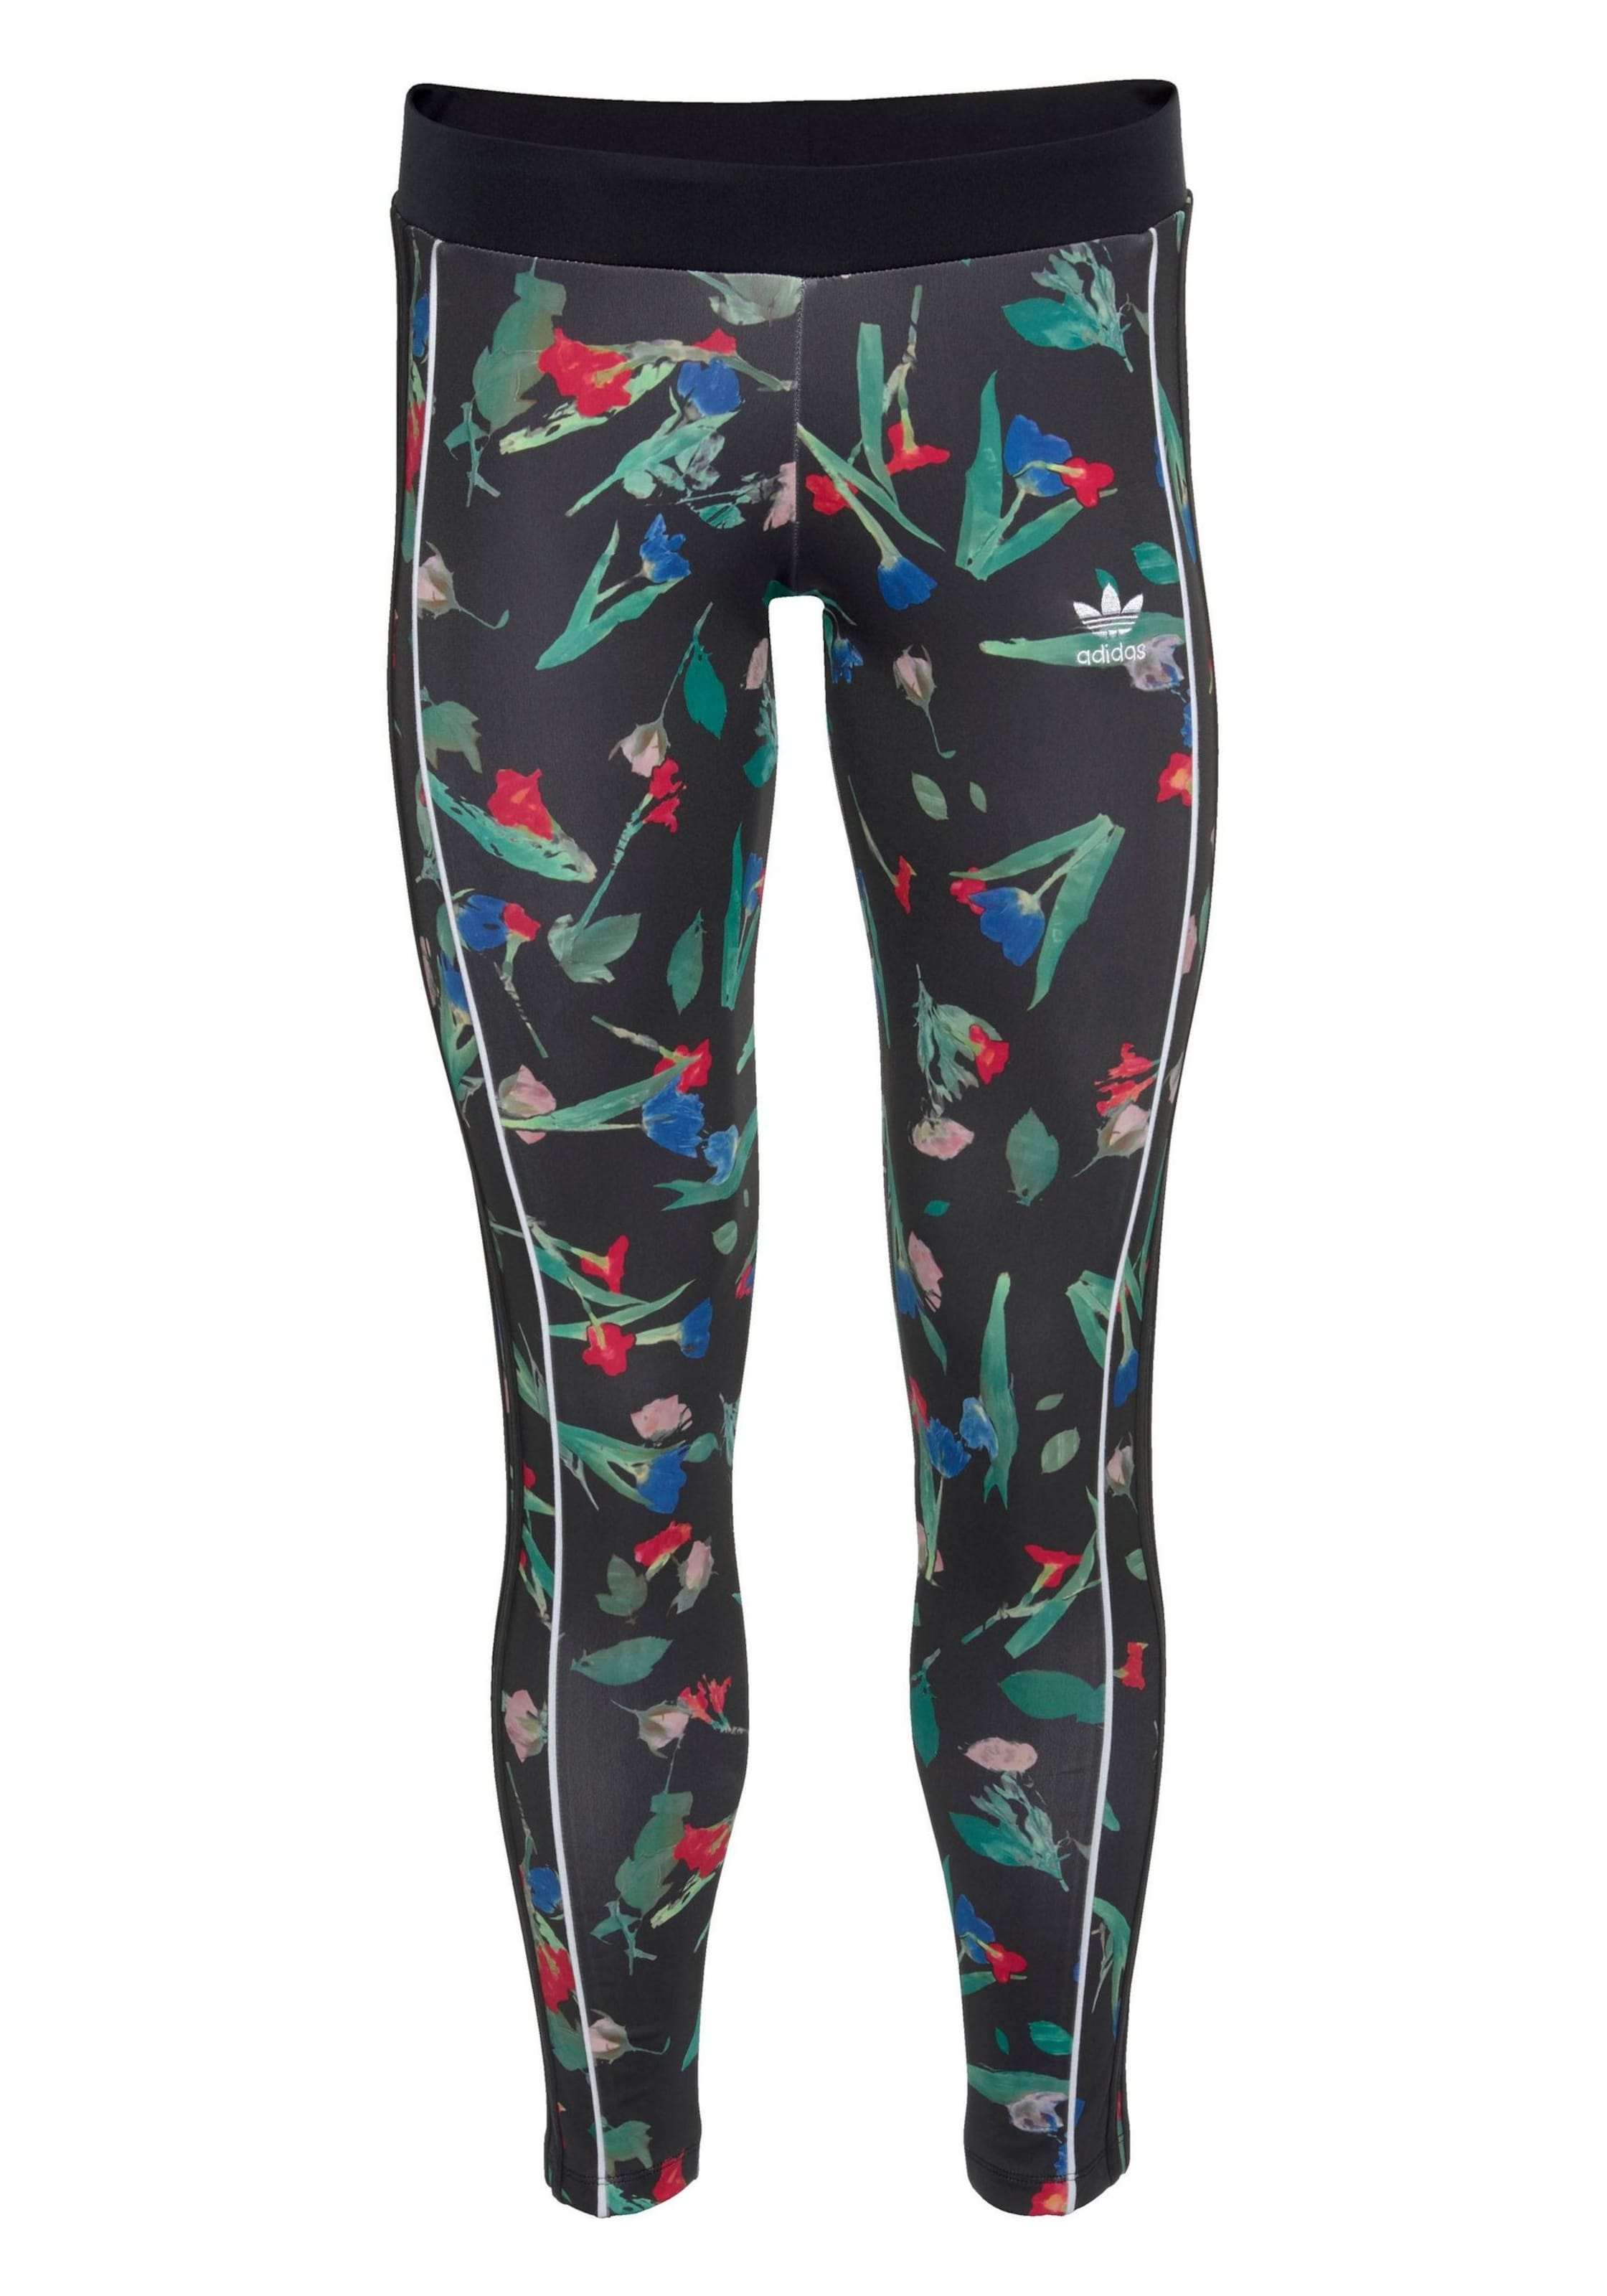 Originals En De Mélange Leggings CouleursNoir Adidas tdCshQr